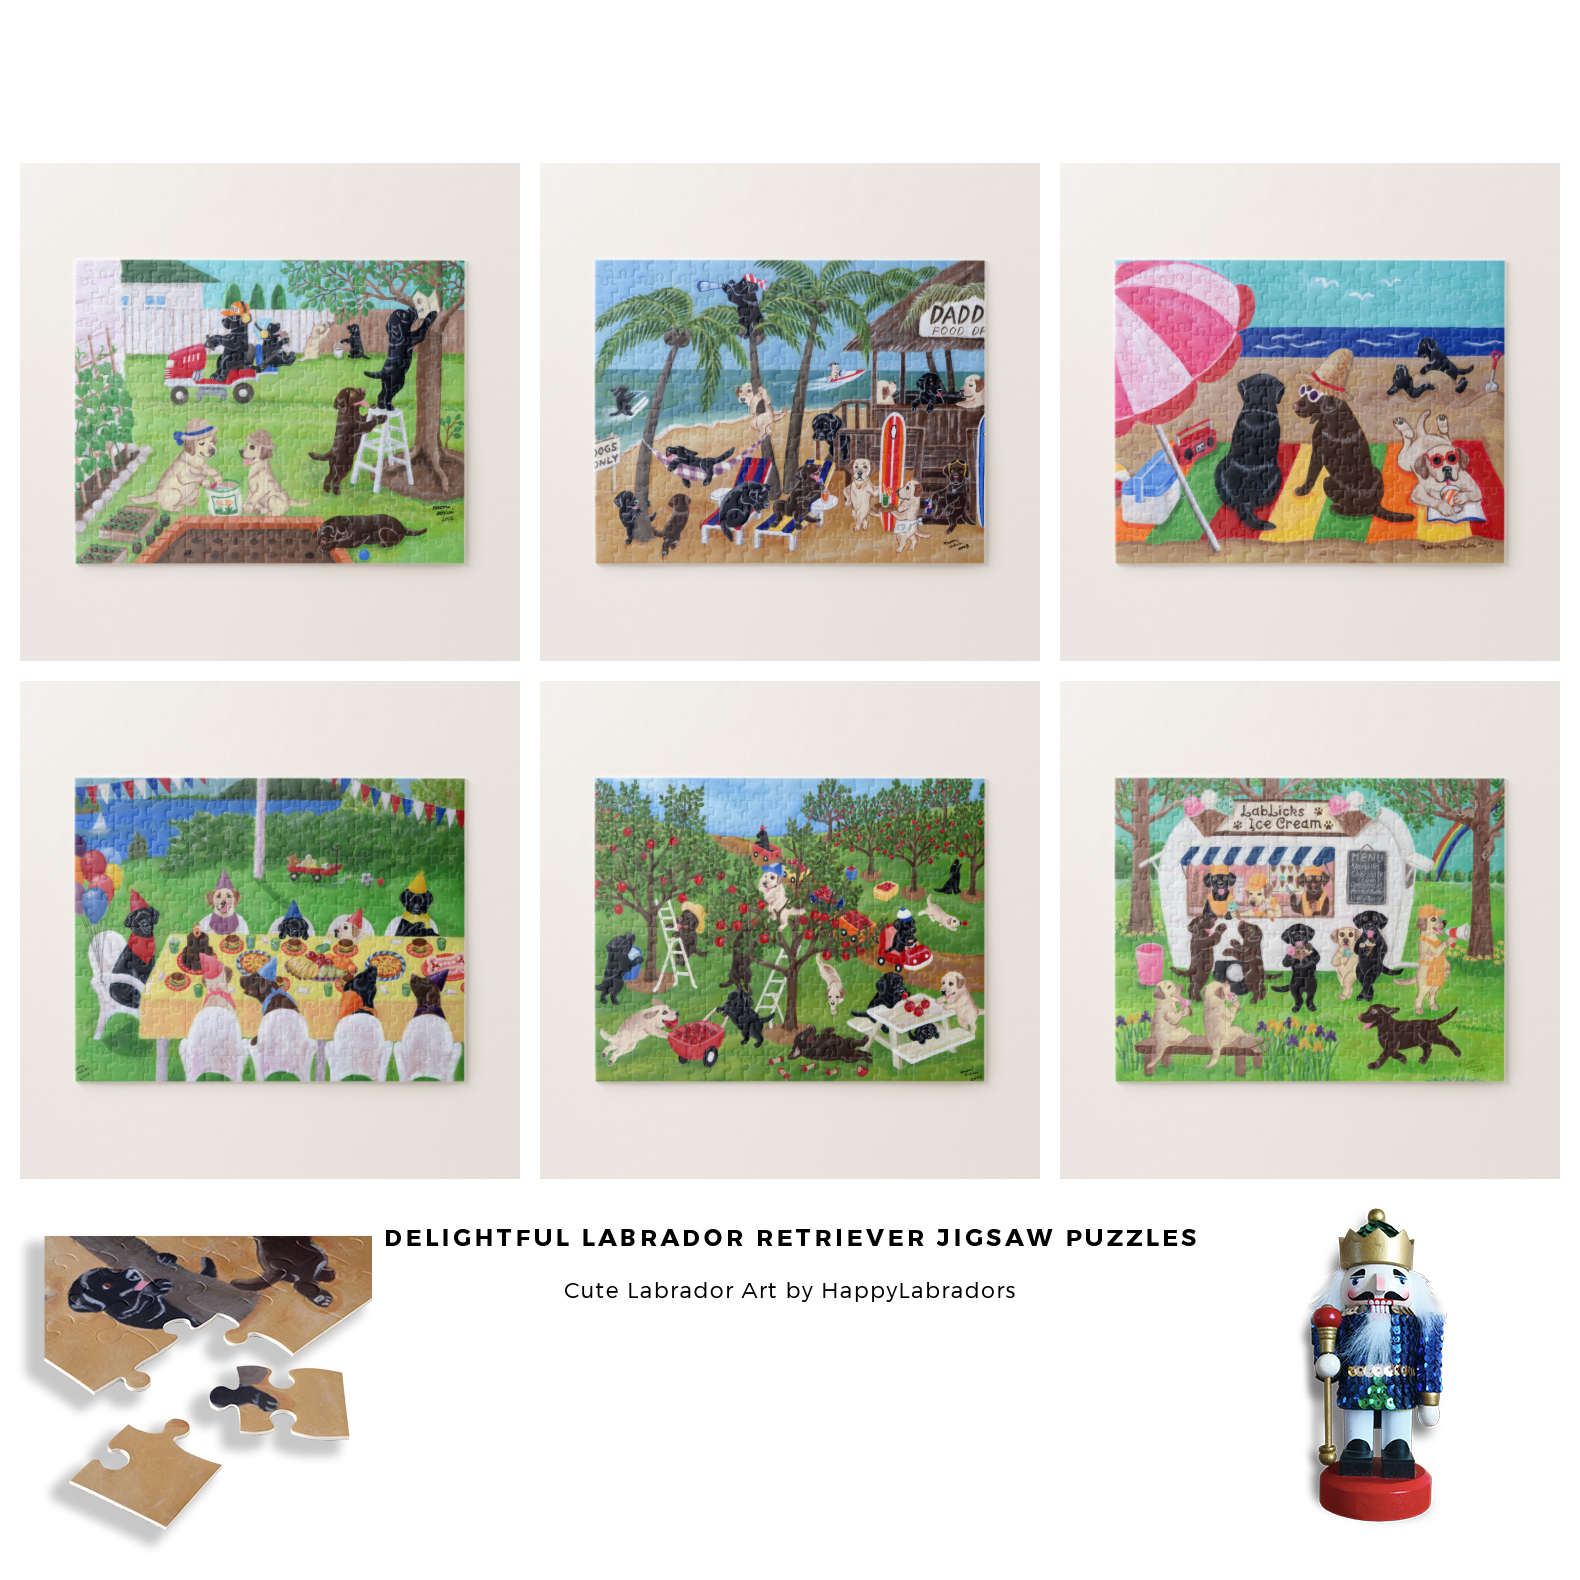 Cute Labrador Retriever Jigsaw Puzzle Collection by HappyLabradors